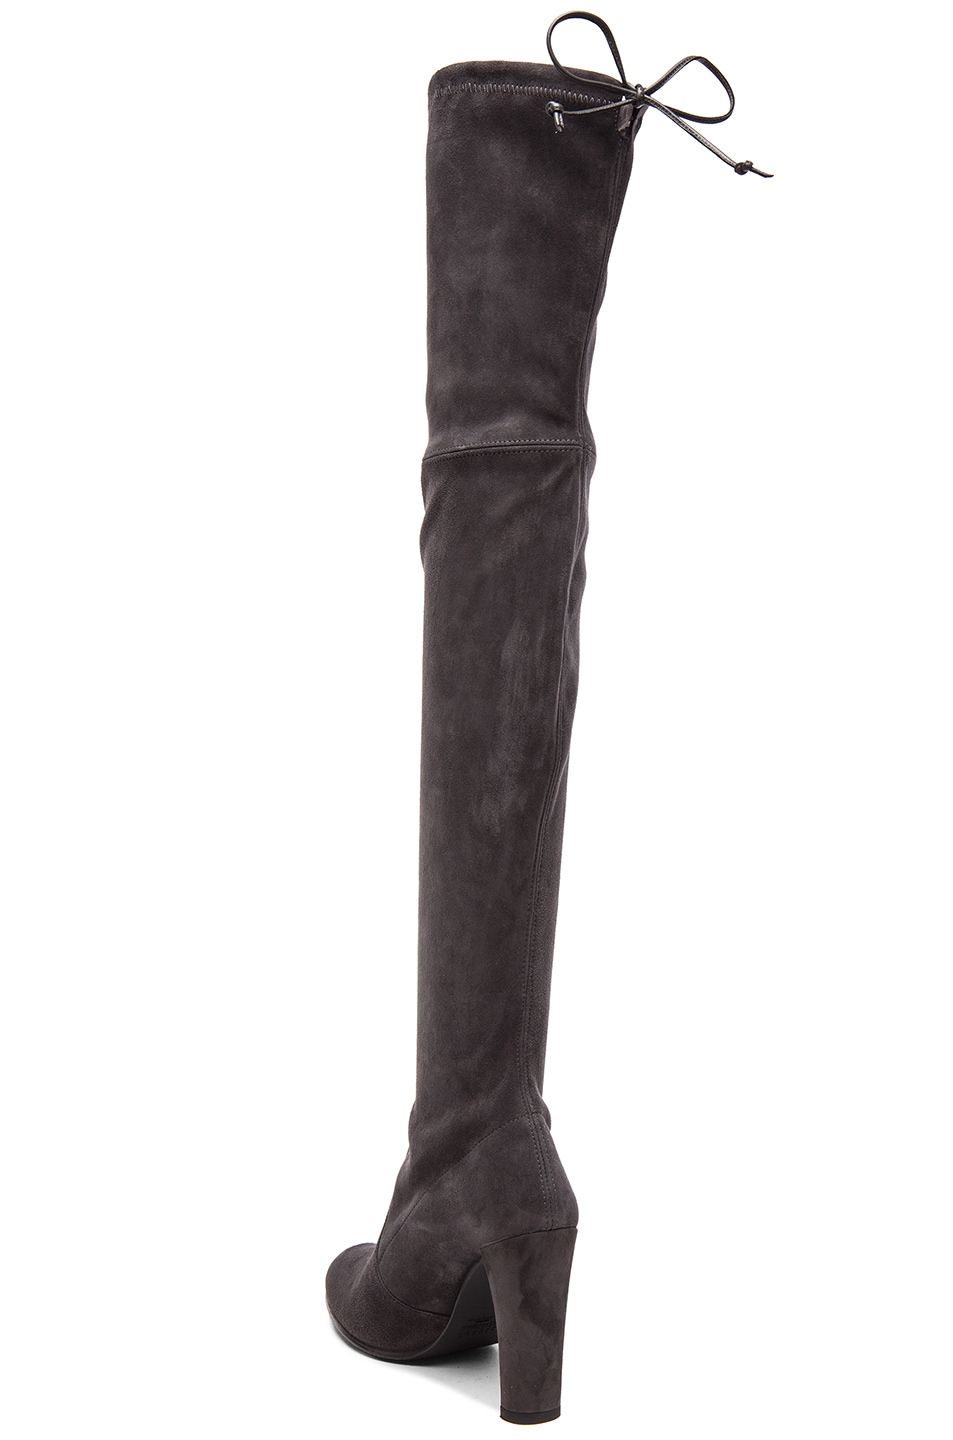 Image 3 of Stuart Weitzman Highland Suede Boots in Grey Suede